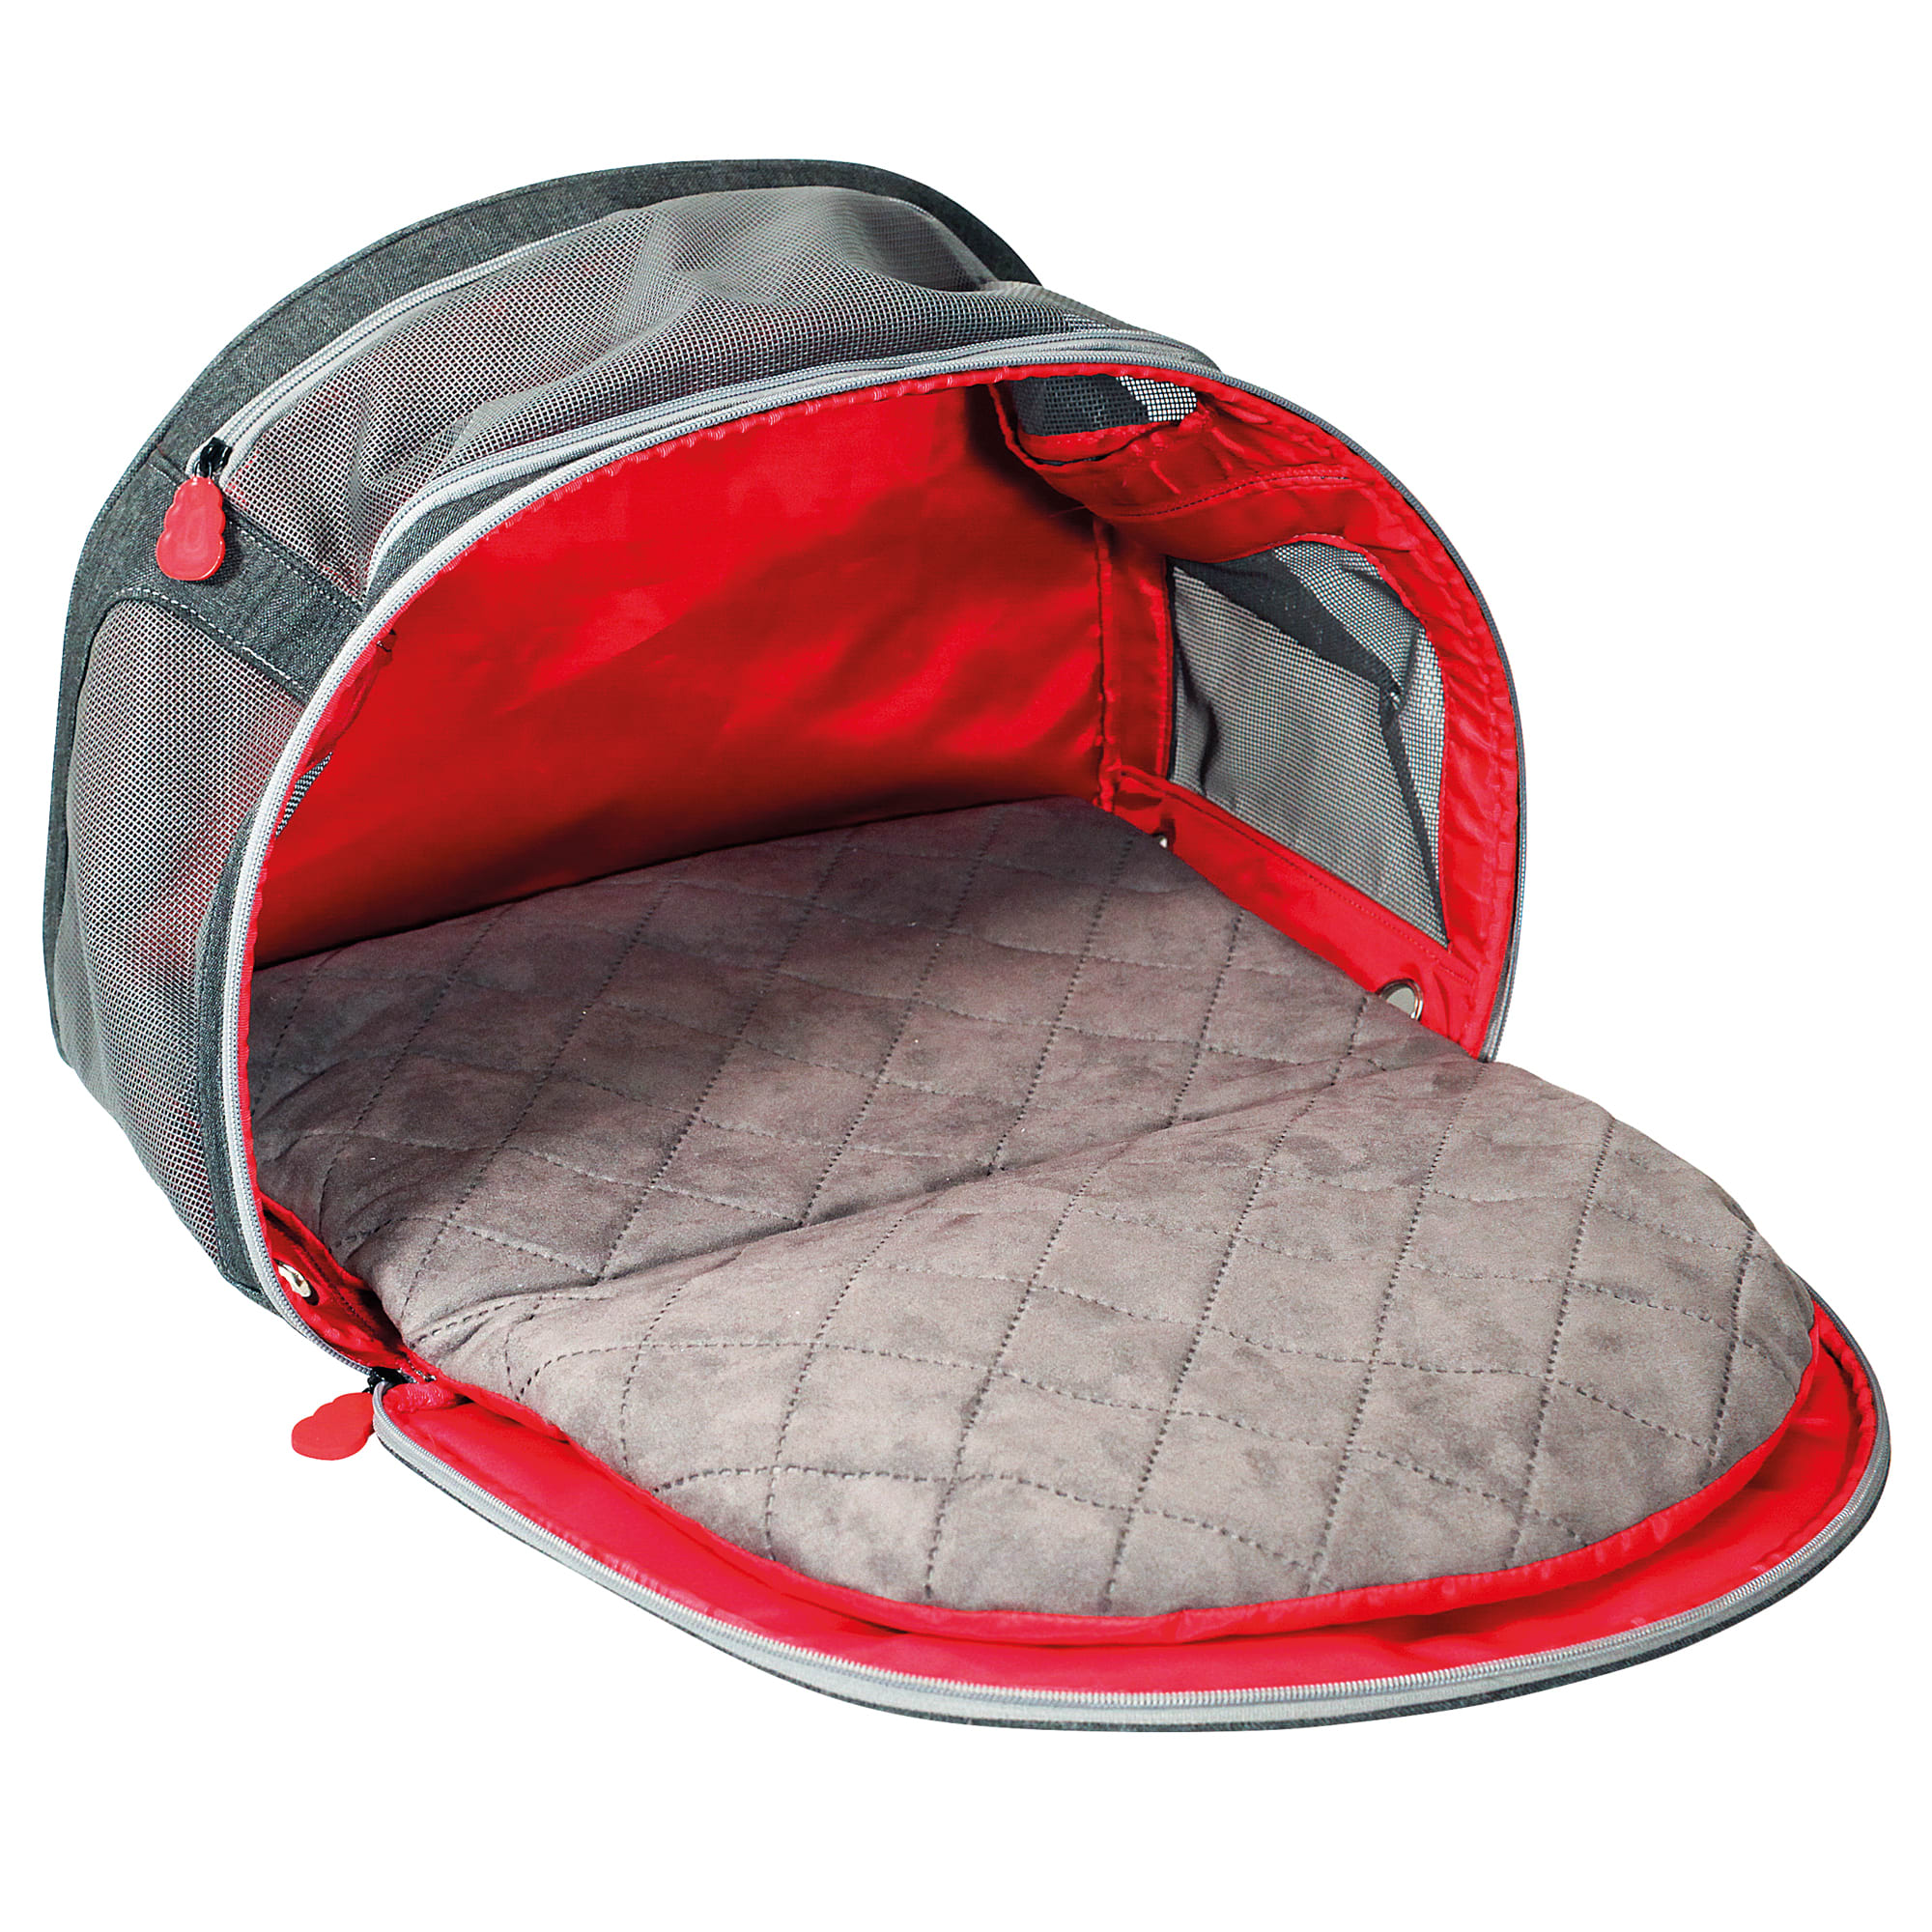 "KONG 2-In-1 Cat and Small Dog Carrier and Travel Mat, 20"" L X 9"" W X 13"" W, Medium"